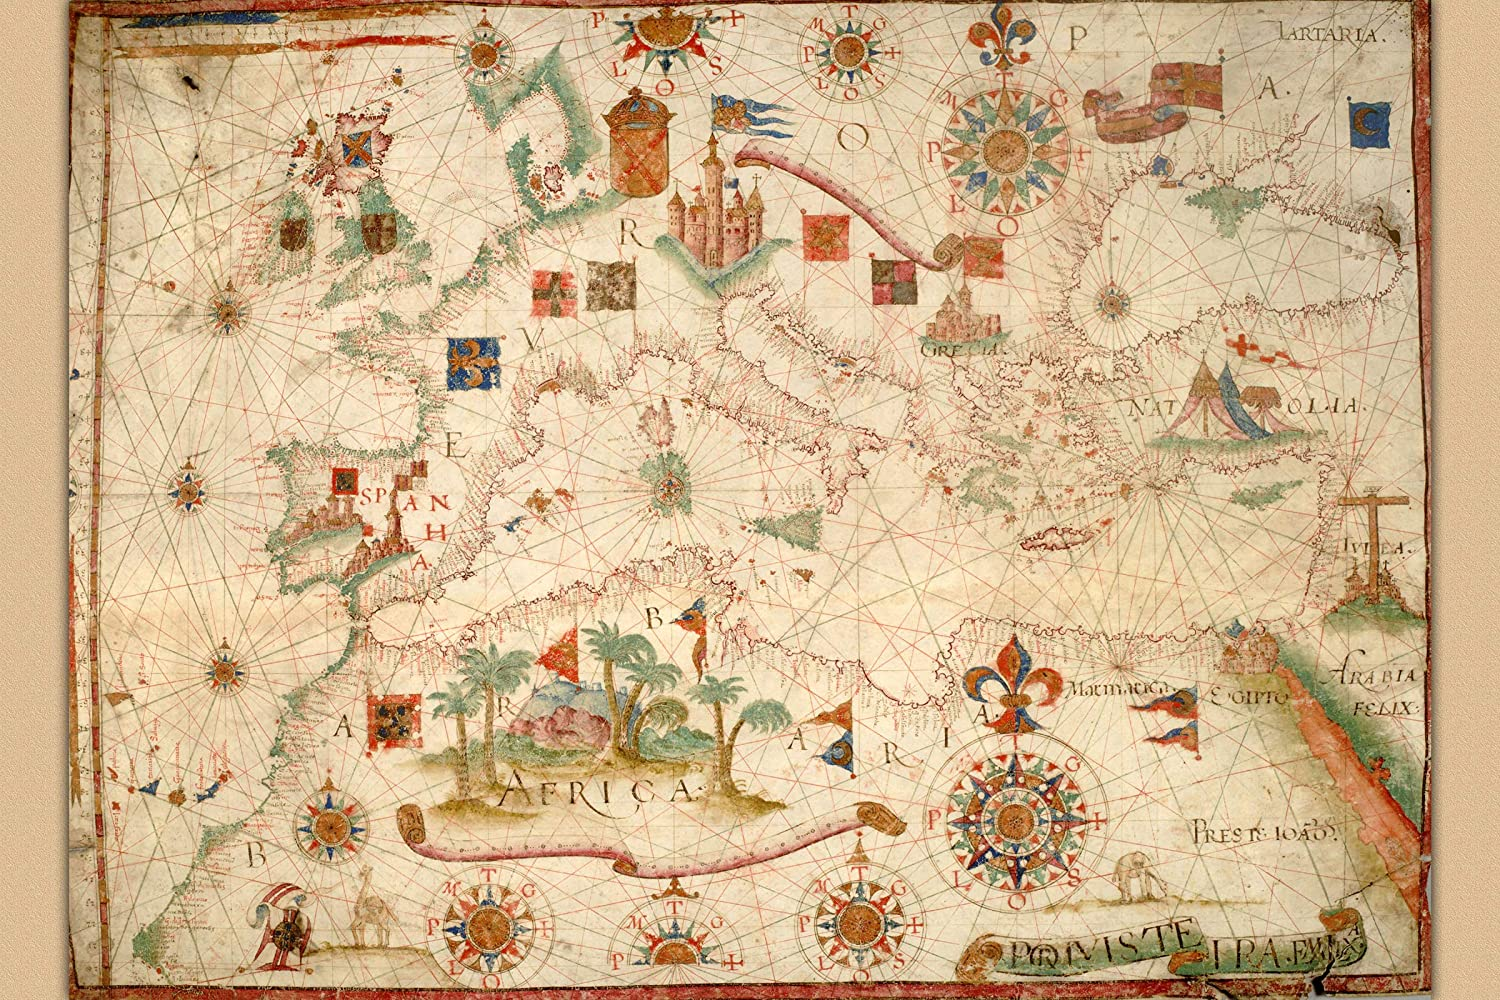 History Prints The Portolan Chart Of Mediterranean Europe British Isles Part Of Scandinavia 16 X 24 Inches Posters Prints